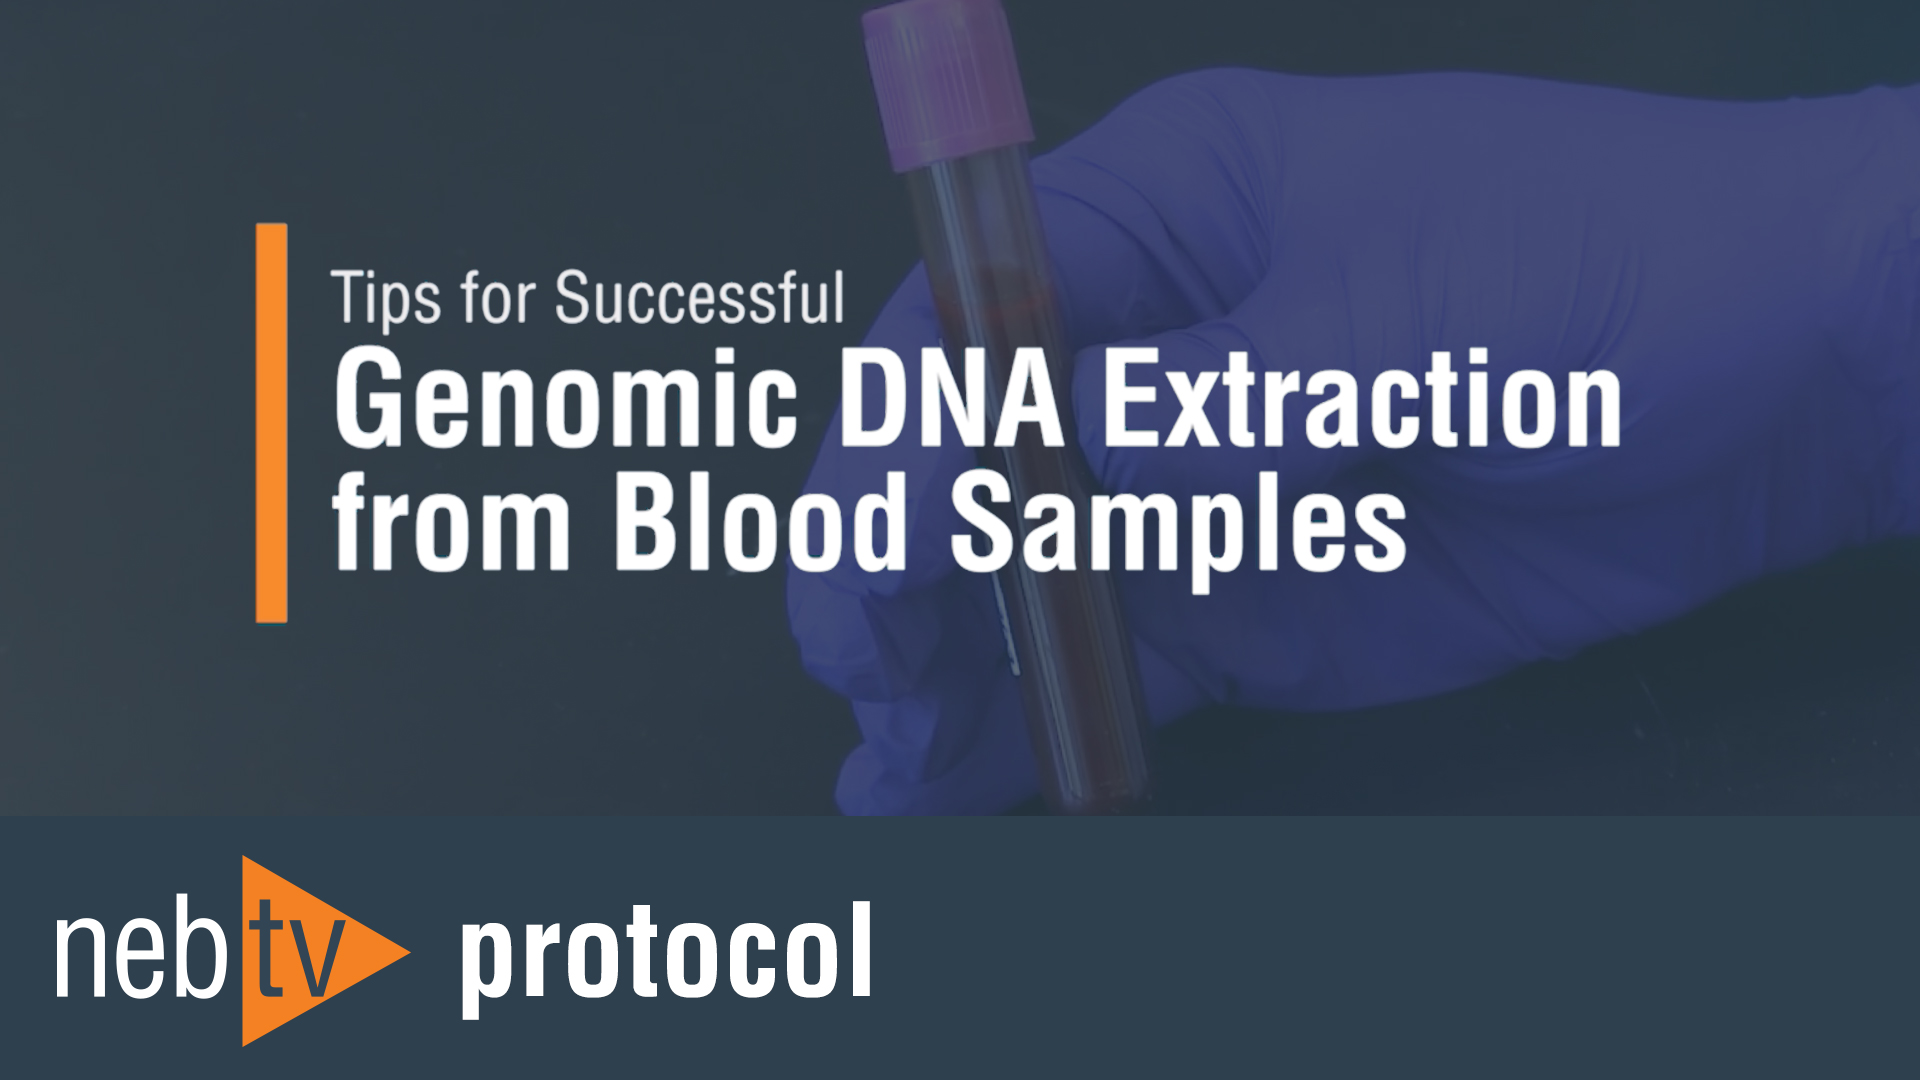 Tips for Successful GenomicDNAExtractionfromBloodSamples